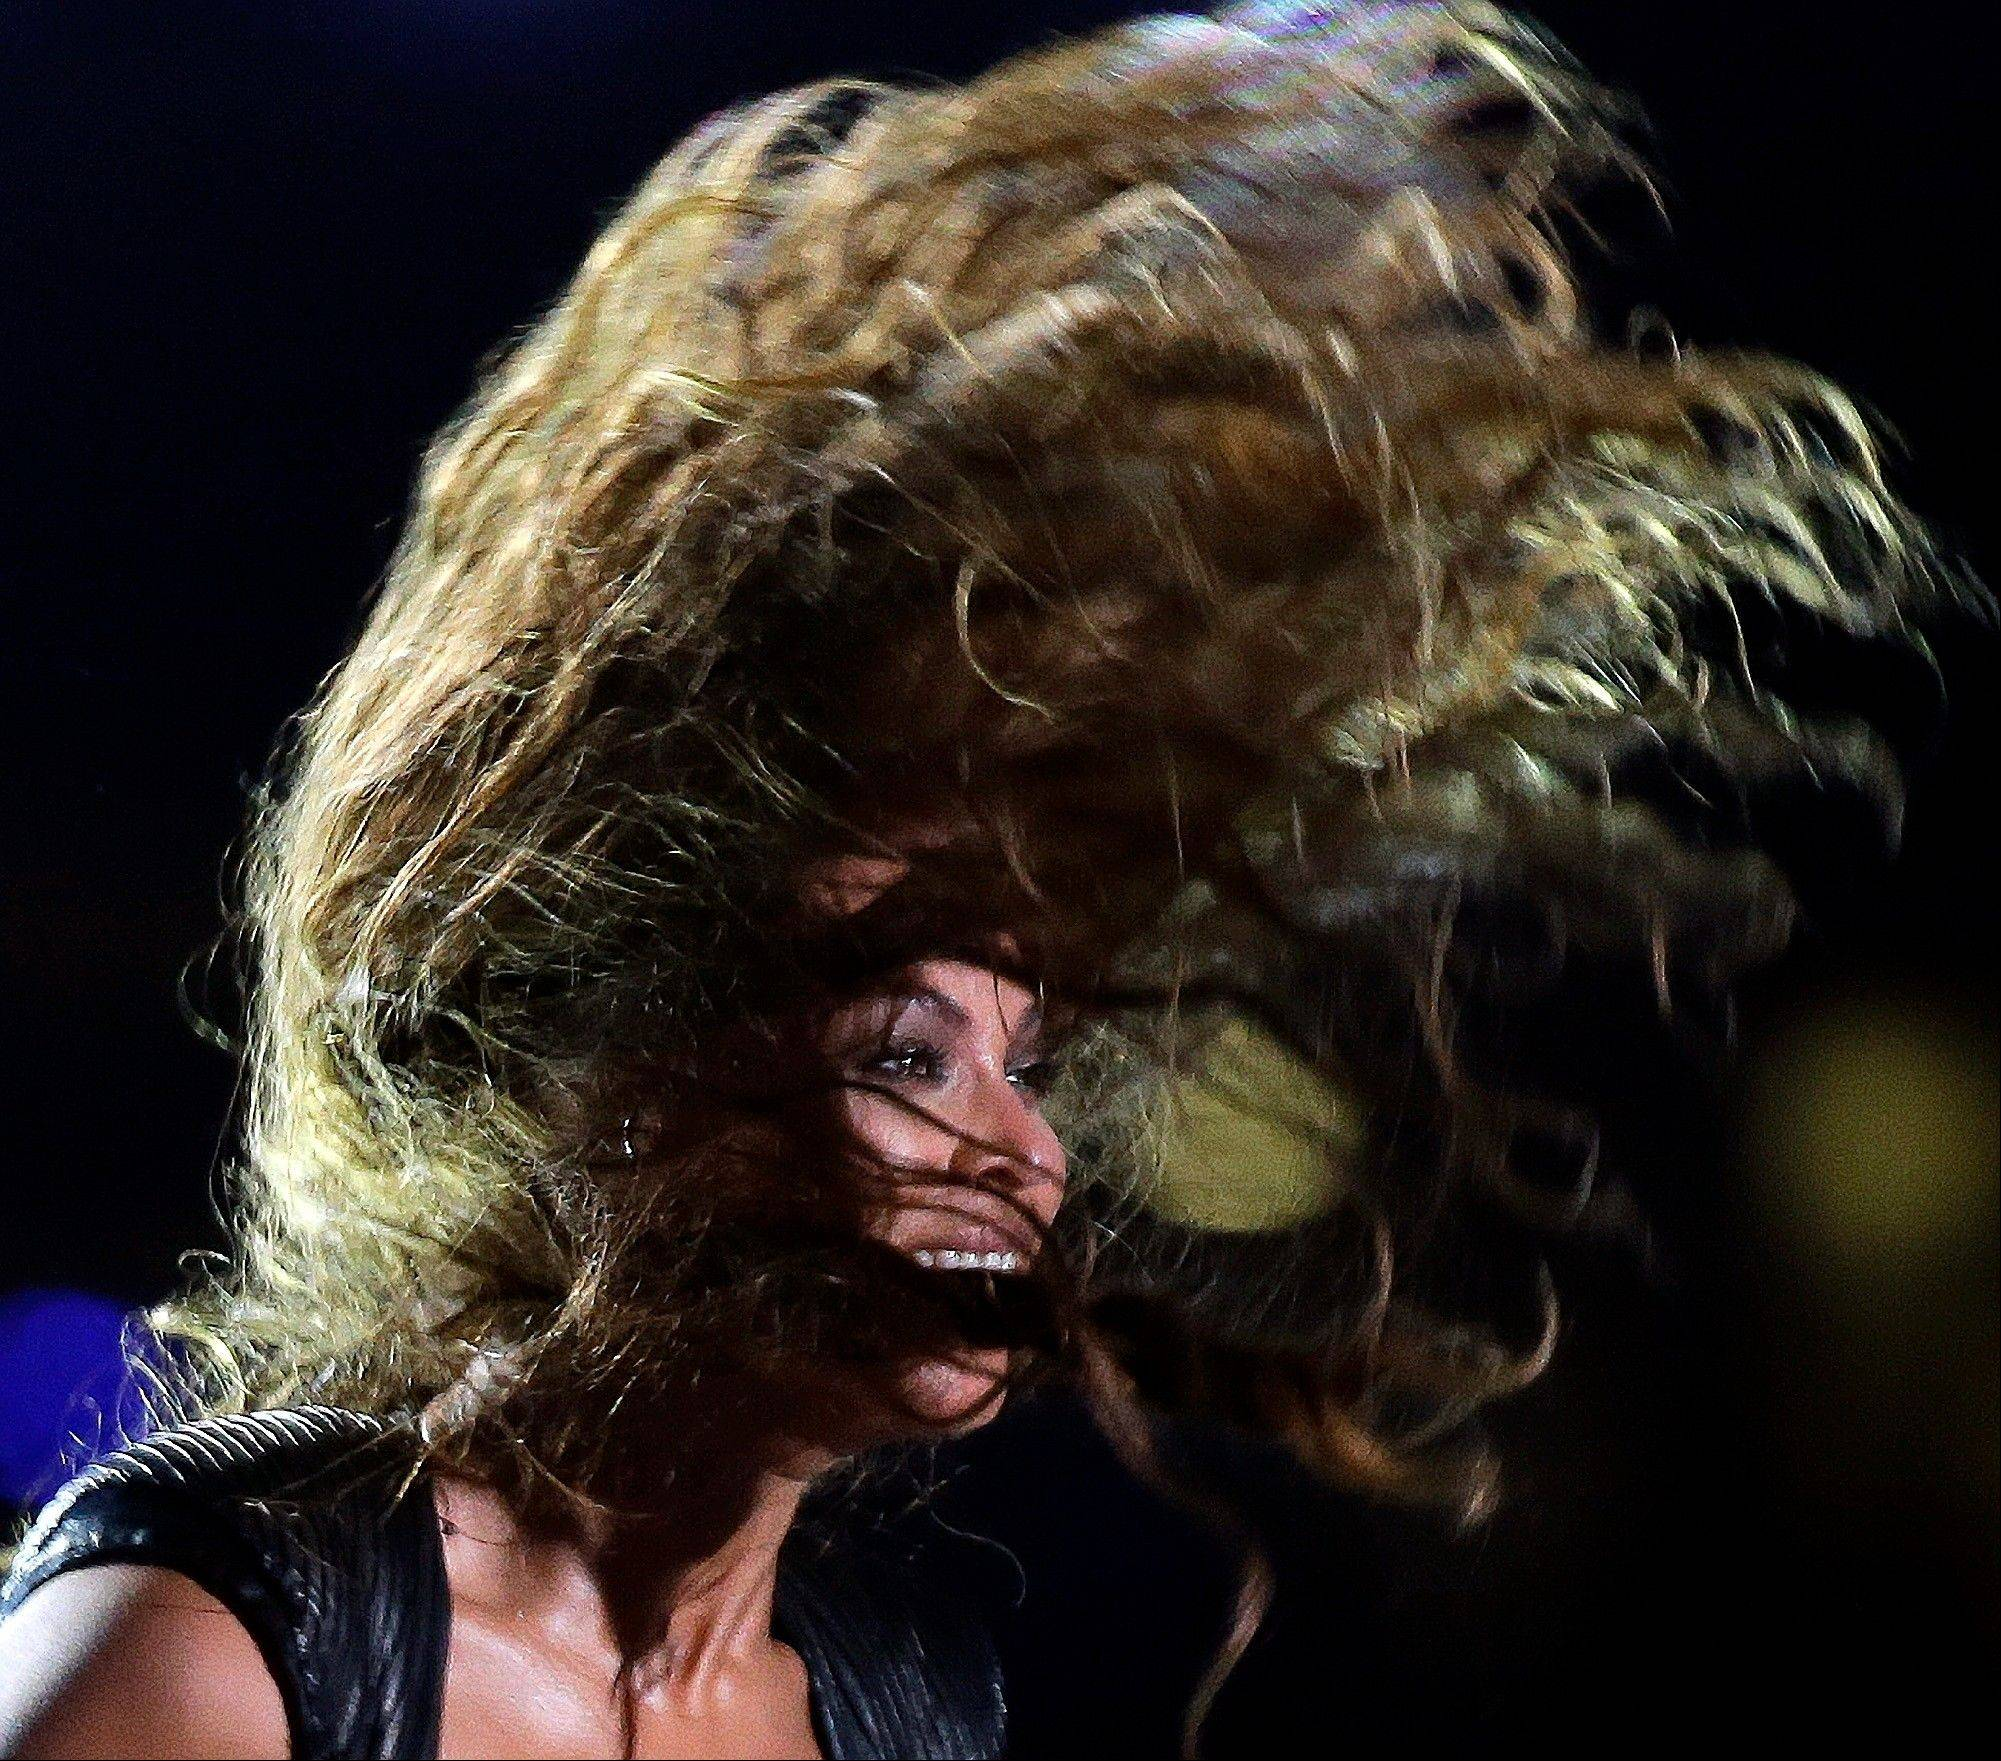 Beyonce performs during the halftime show of the Super Bowl on Sunday in New Orleans.